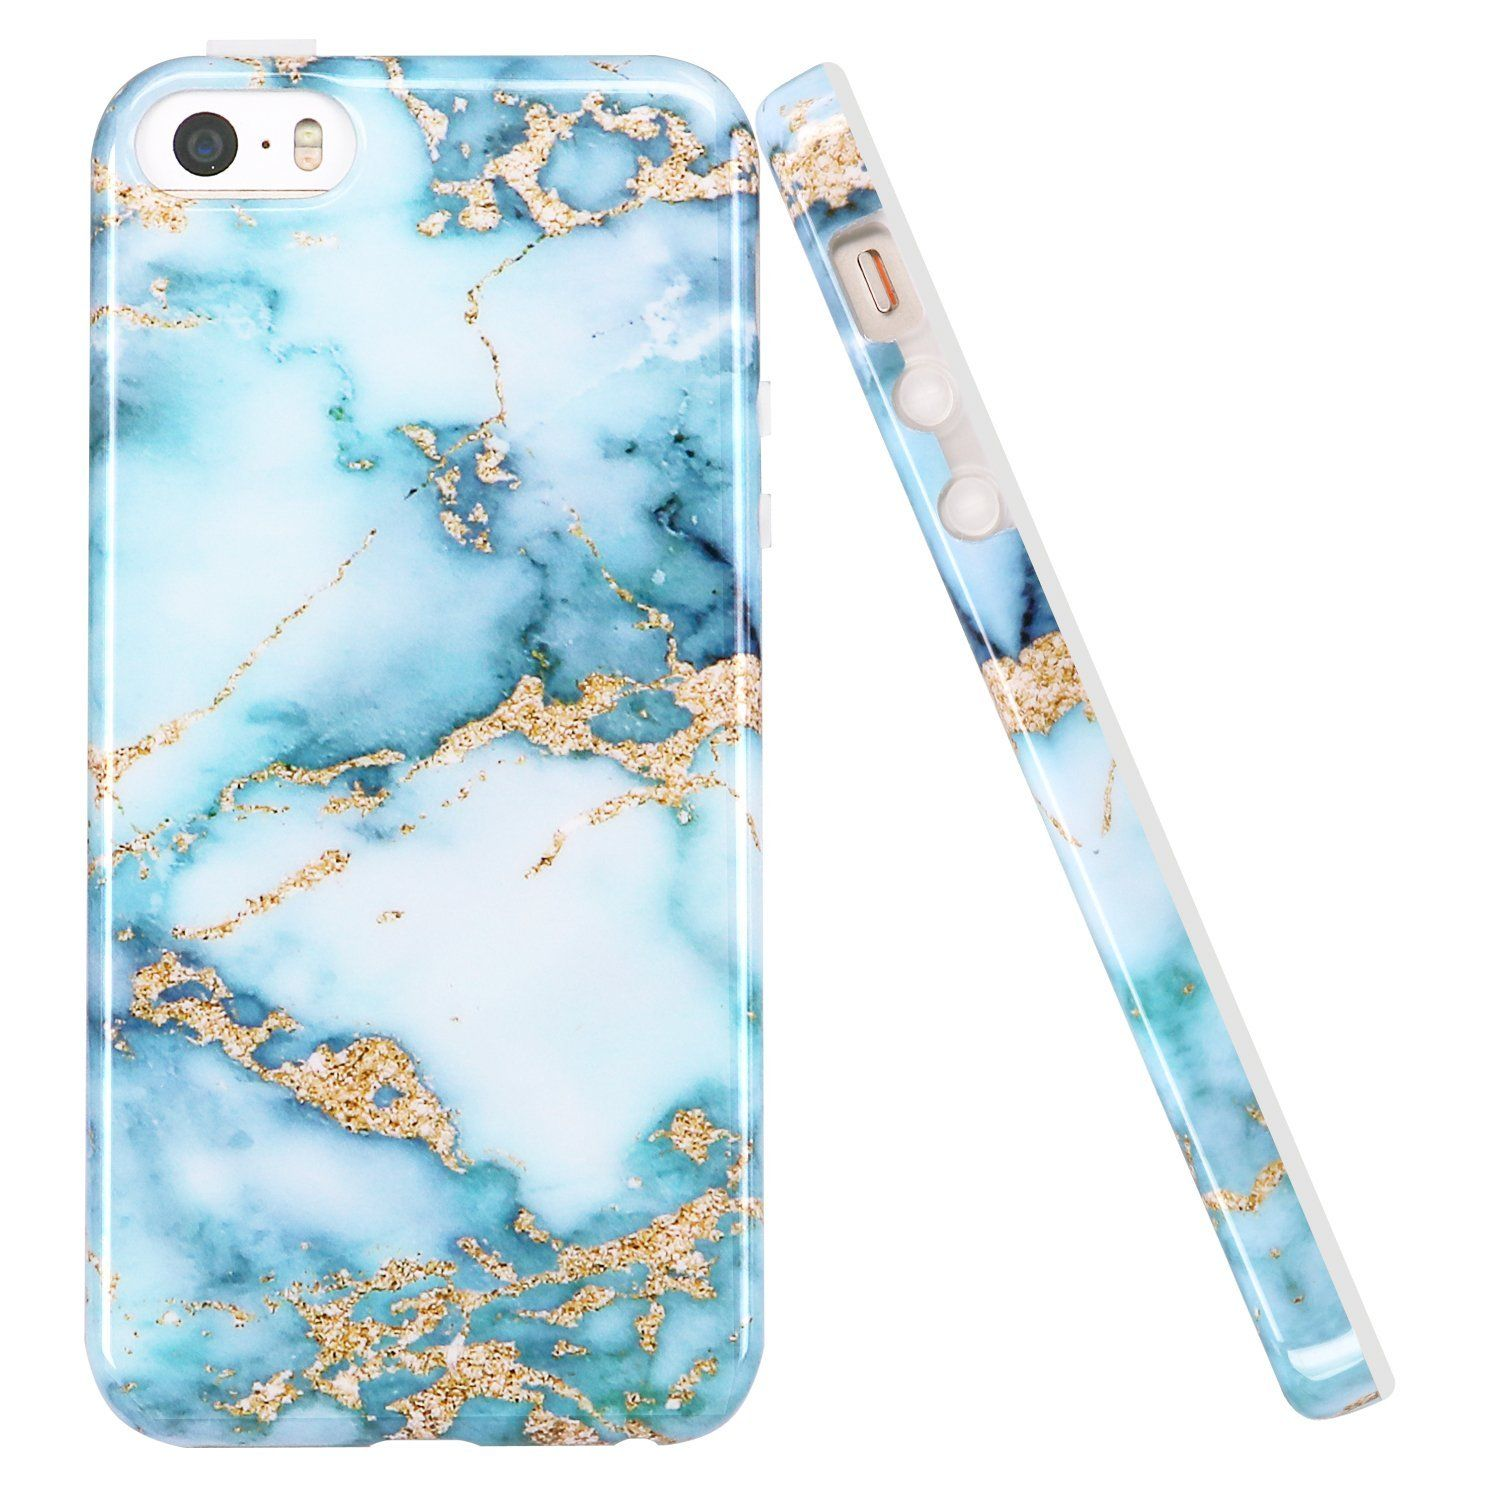 new style 6a43c f795d Amazon.com: iPhone 5 5S Case, LUOLNH Aquamarine and gold Marble ...